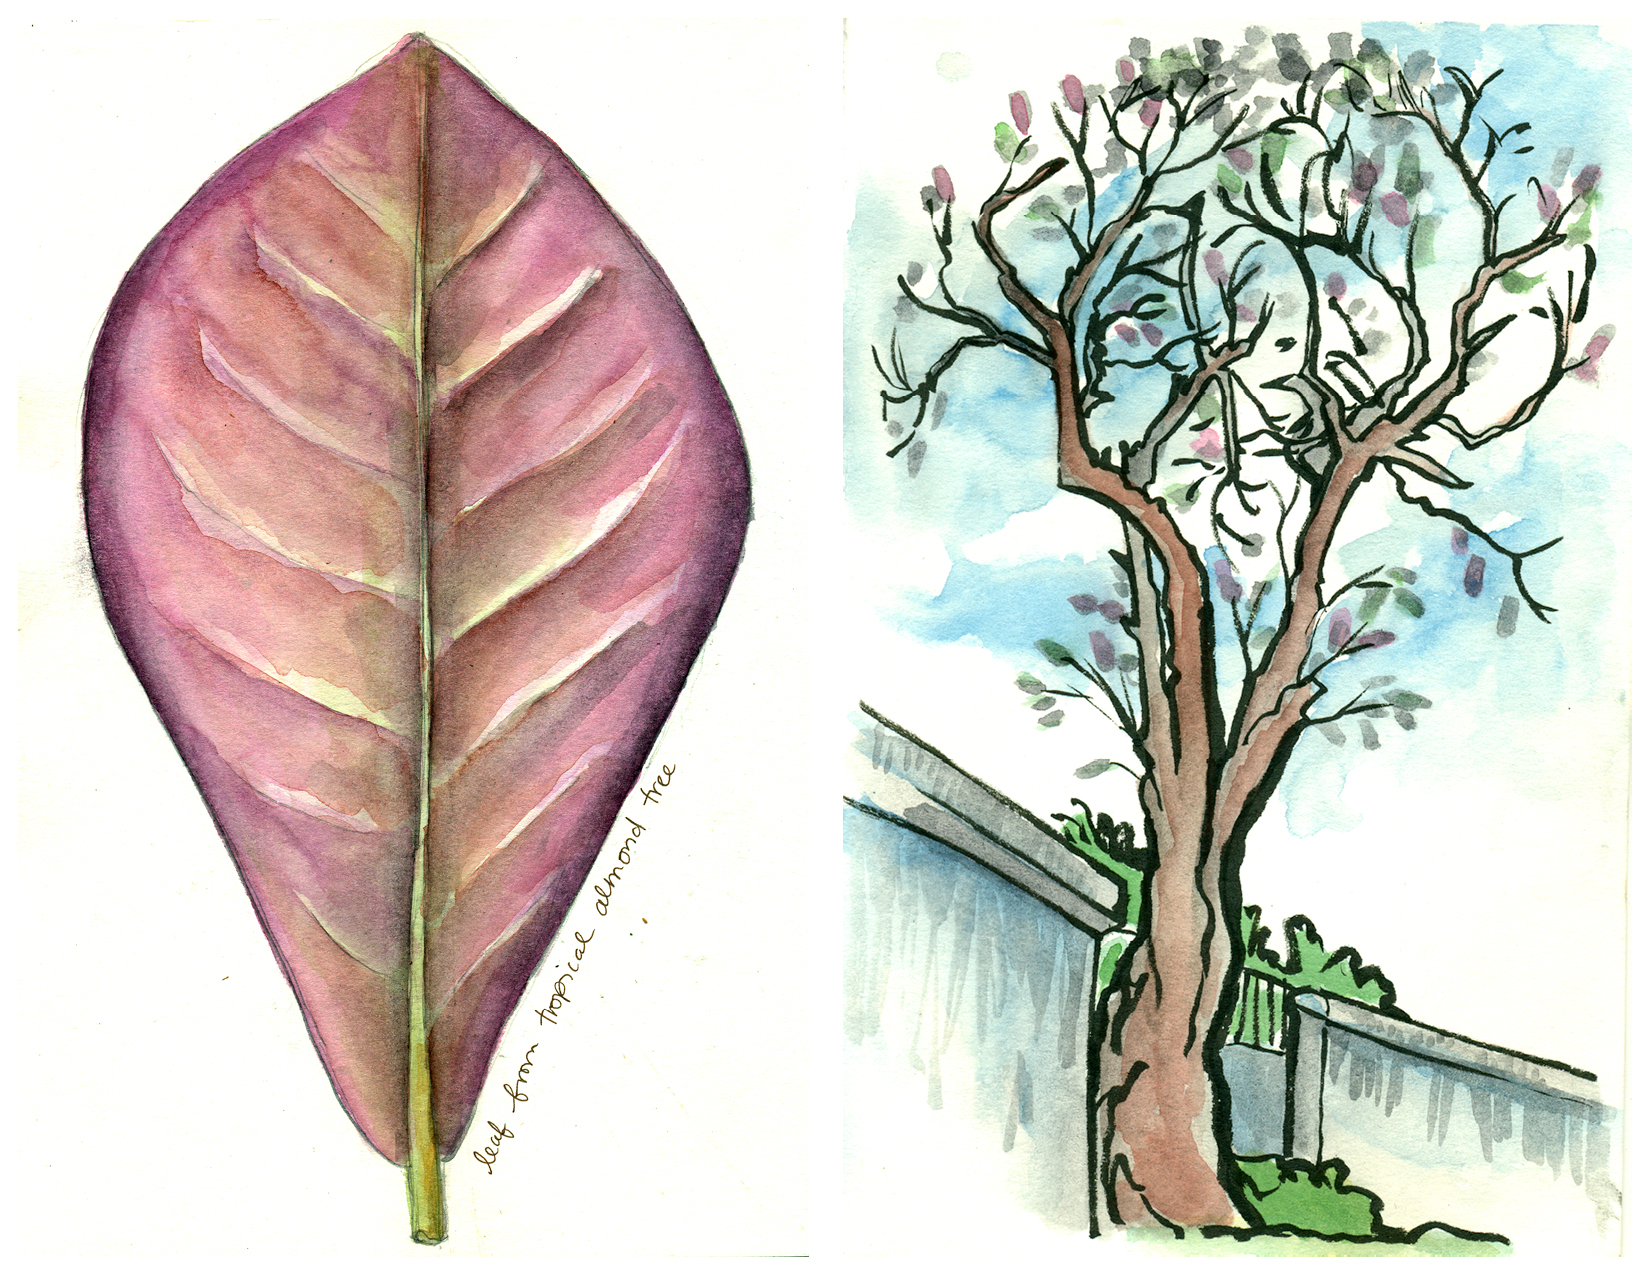 Sketchbook spread of Tropical Almond Lead study (left) and the Almond Tree at Hoa Lo Prison (right). Watercolor and pen. The sketch on the right uses a brush pen.